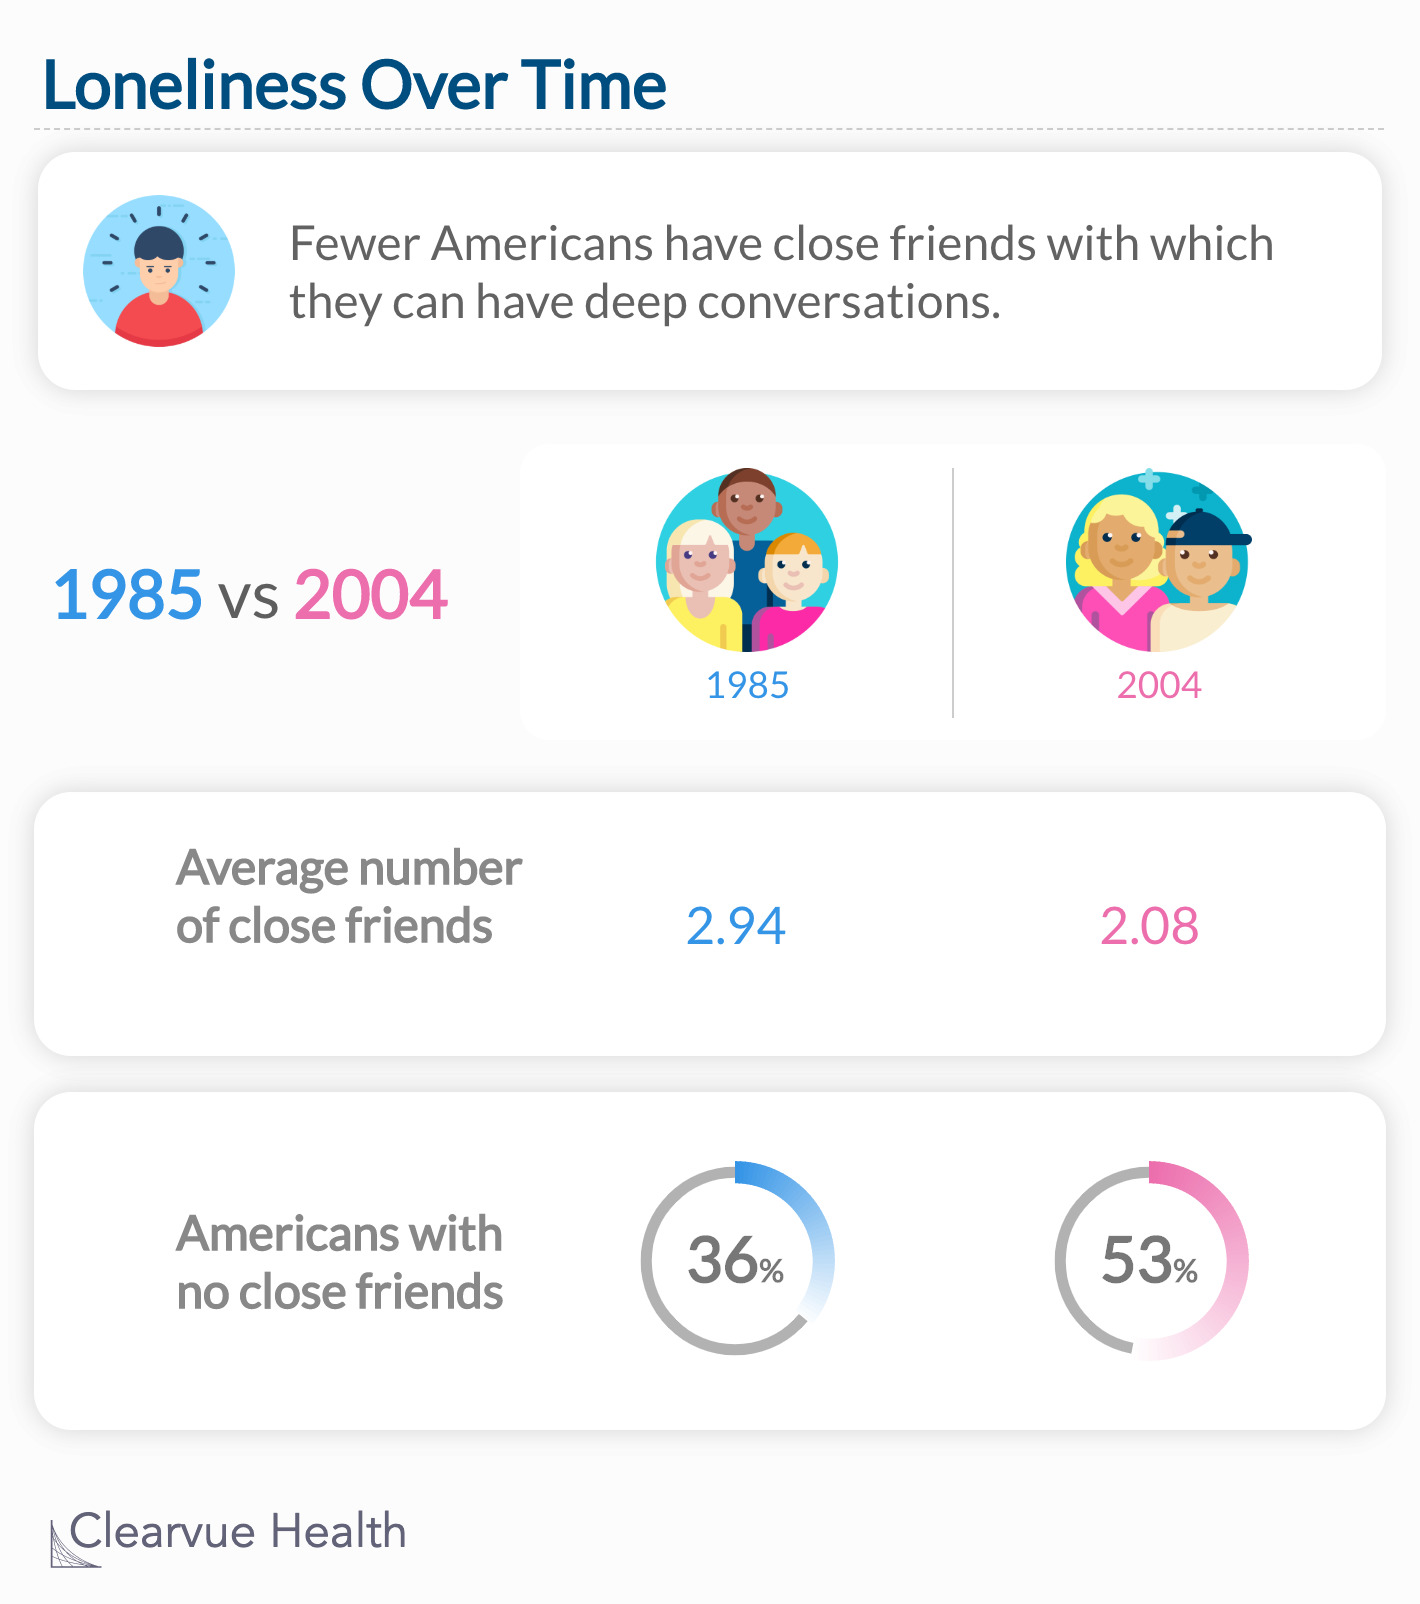 Fewer Americans have close friends with which they can have deep conversations.